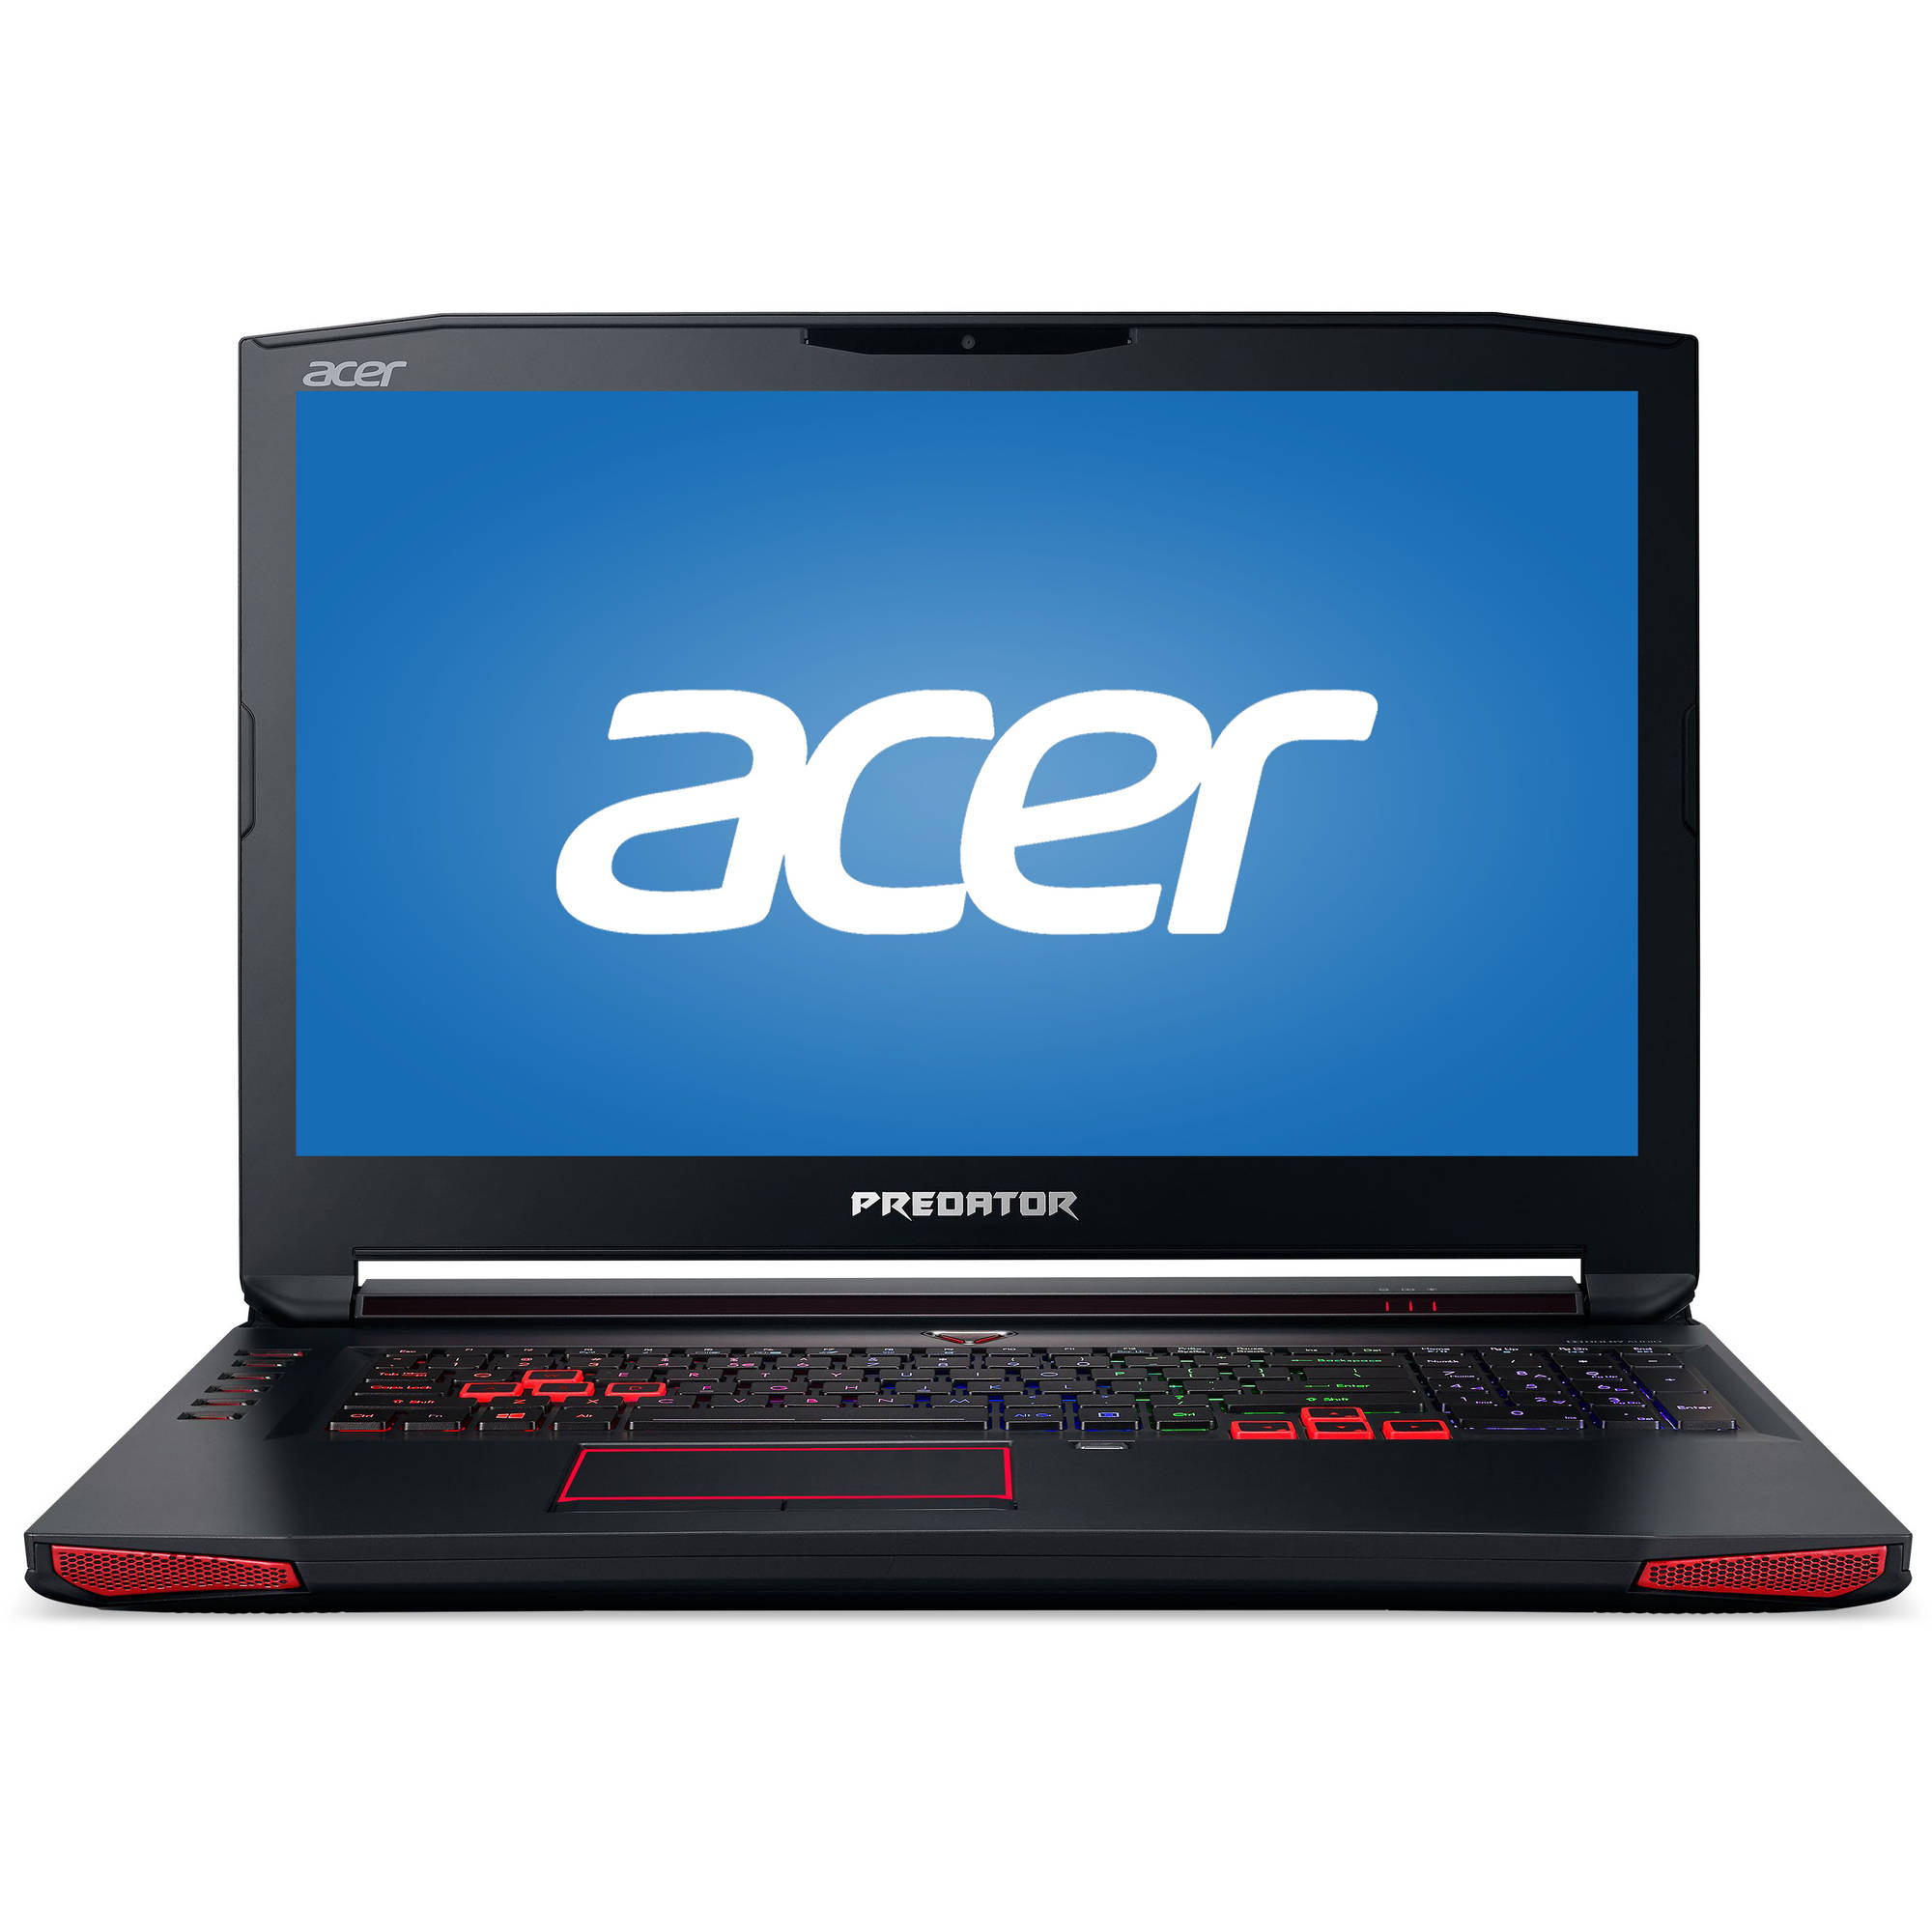 "Acer G9-593-77WF 15.6"" Predator Gaming Laptop, Windows 10, Intel Core i7-6700HQ, 16GB RAM, 256GB Solid... by Acer"